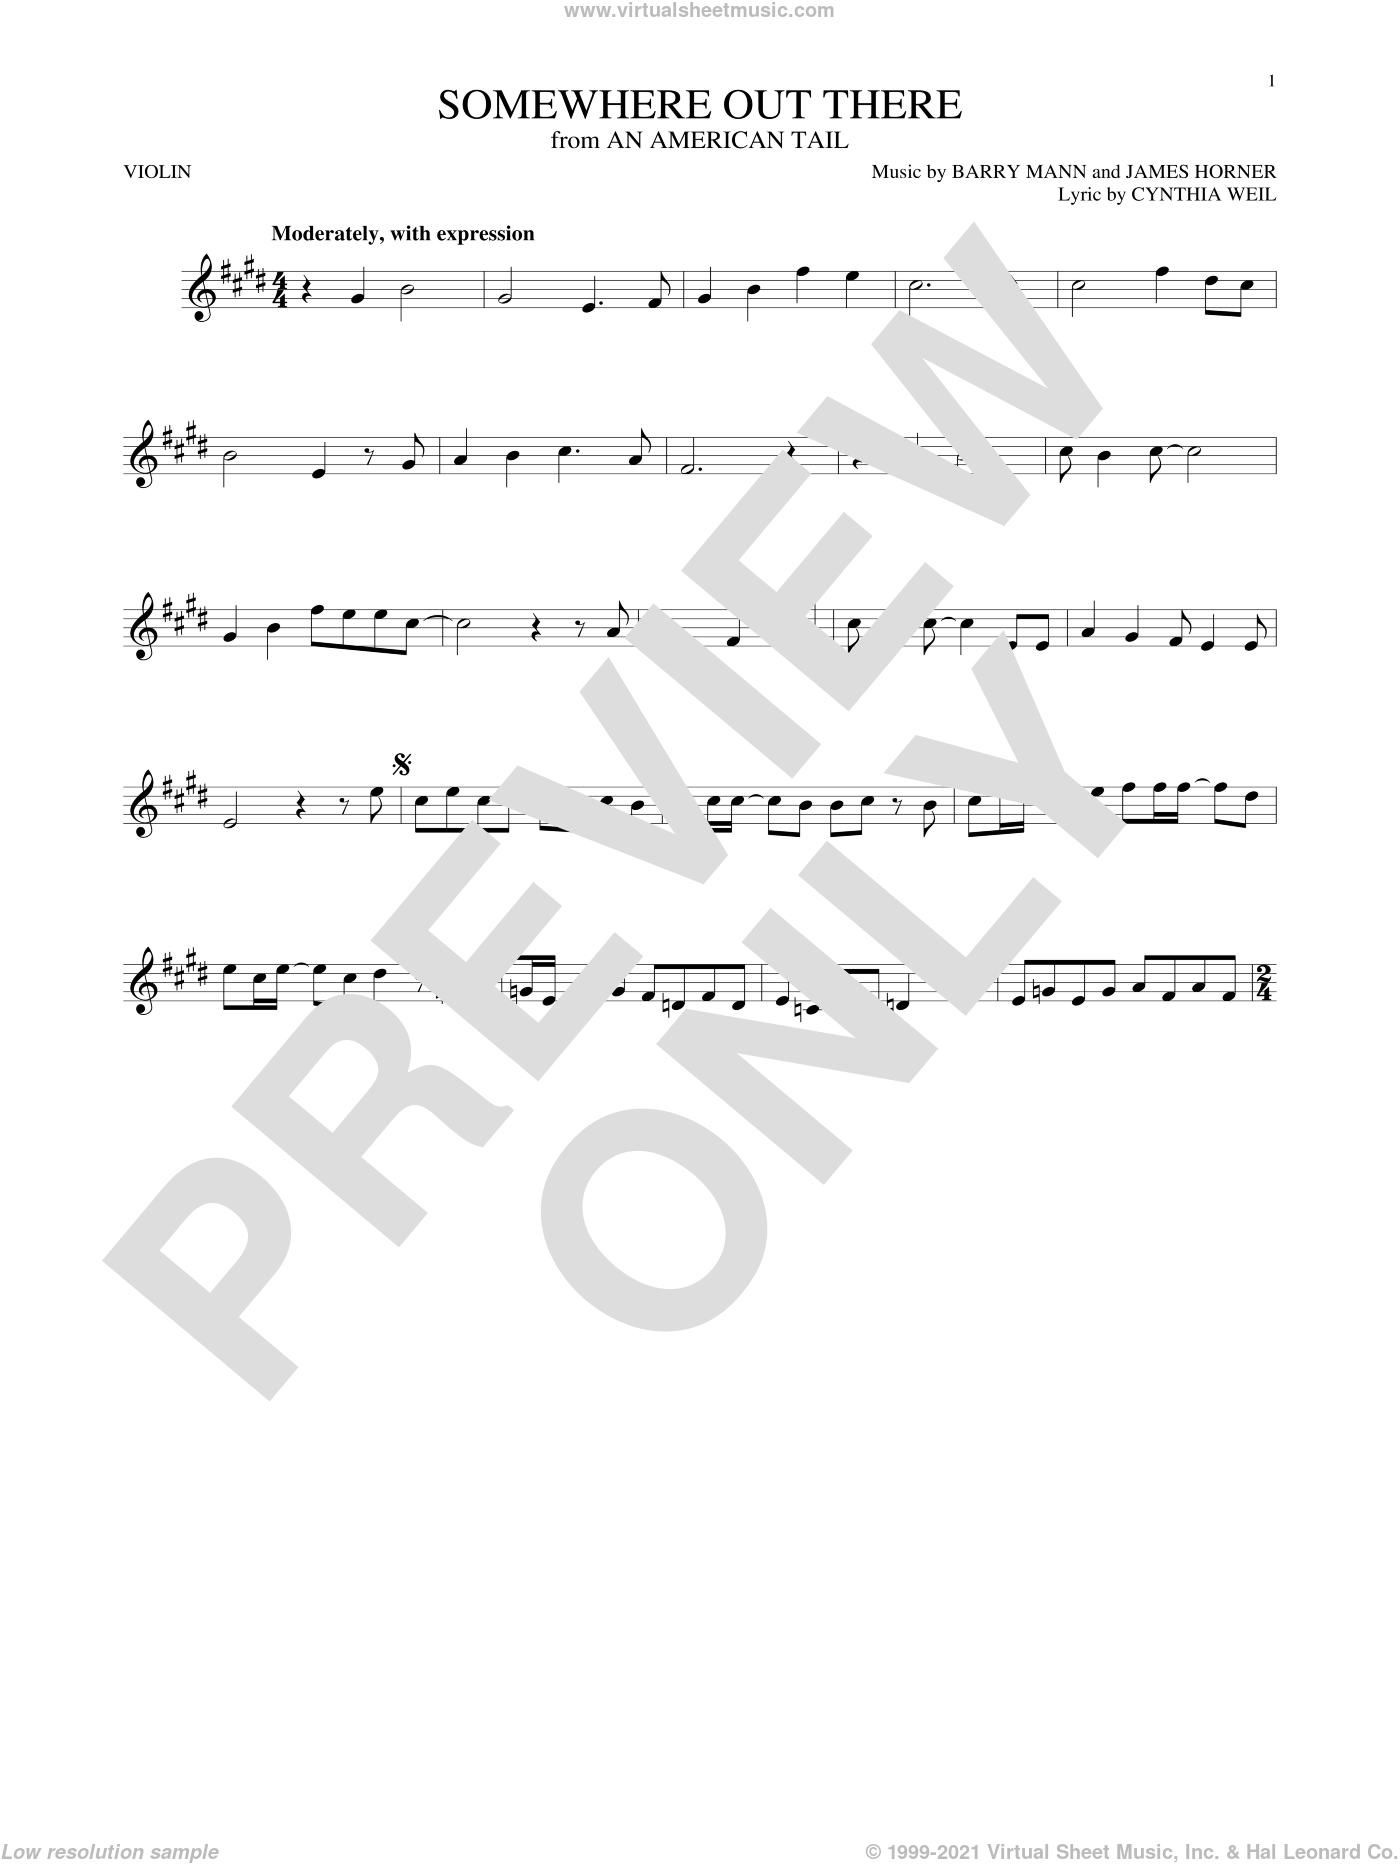 Somewhere Out There sheet music for violin solo by Linda Ronstadt & James Ingram, Barry Mann, Cynthia Weil and James Horner, intermediate skill level